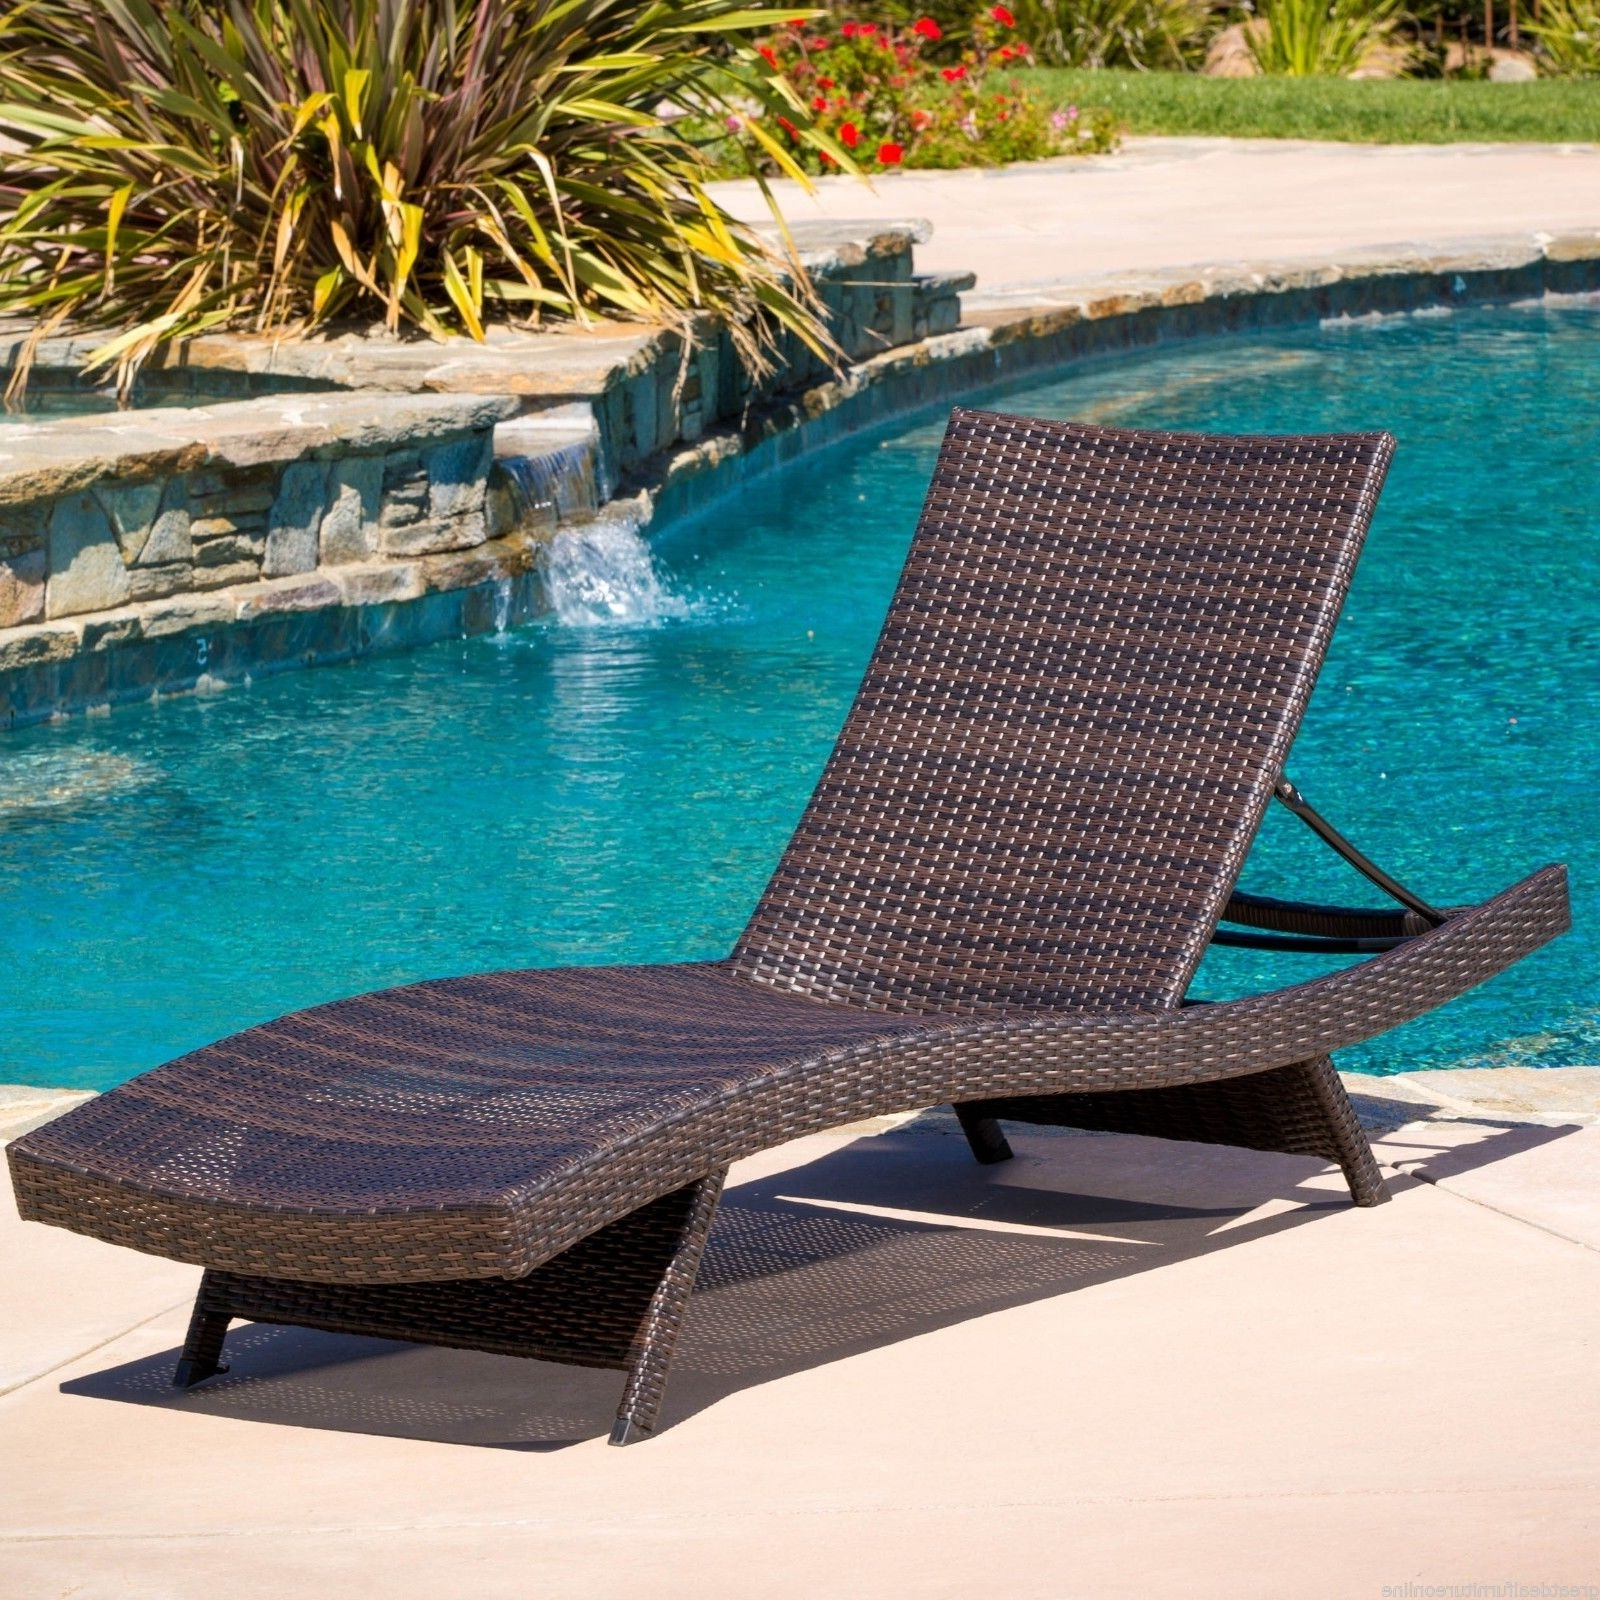 Fashionable Floating Pool Chaise Lounge Chairs • Lounge Chairs Ideas in Lakeport Outdoor Adjustable Chaise Lounge Chairs